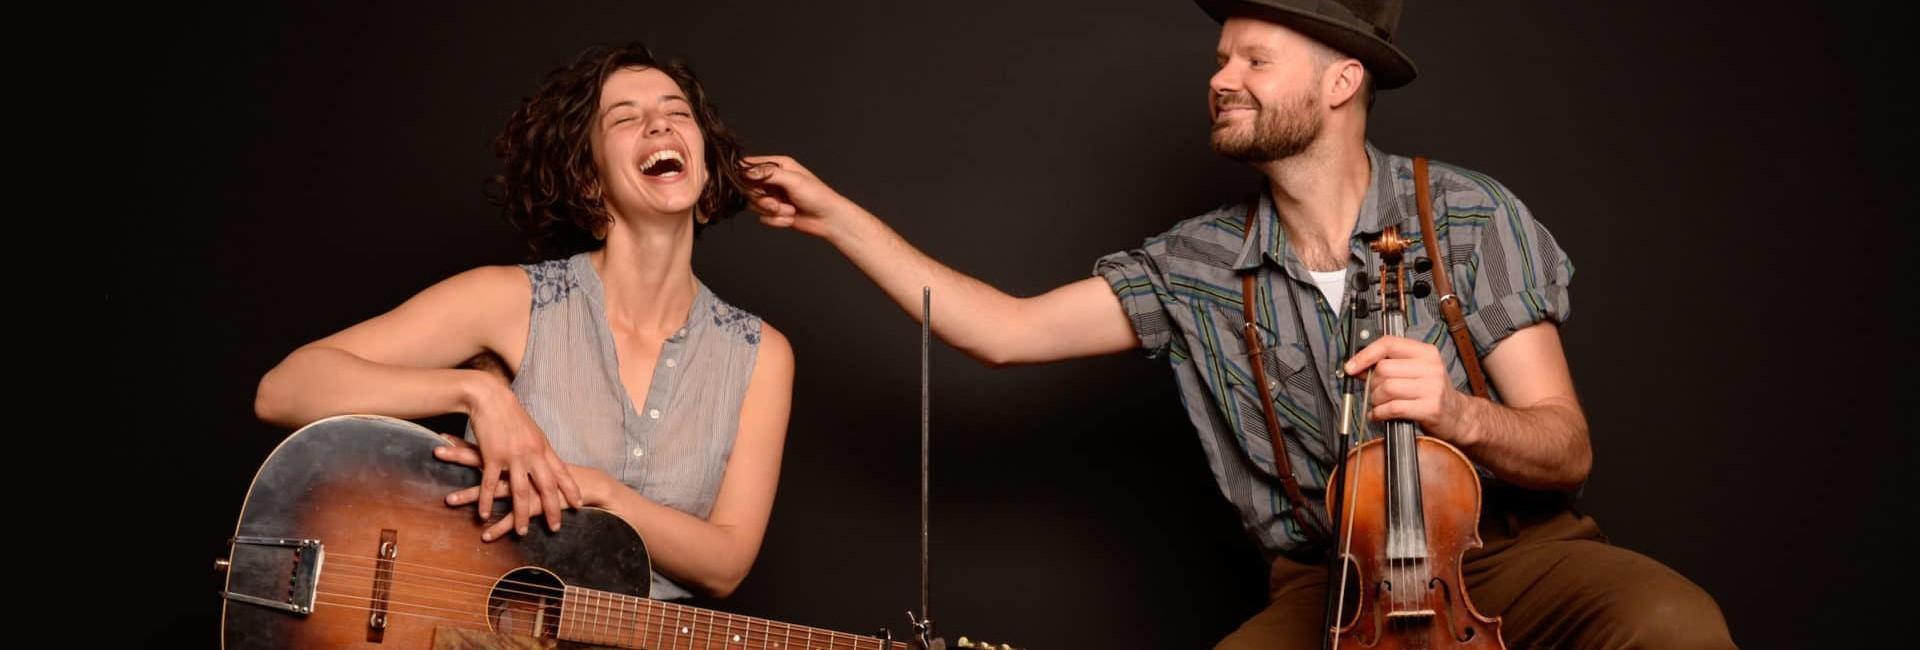 A Day of music workshops and a show with Brigitte & Ryan, April 27!